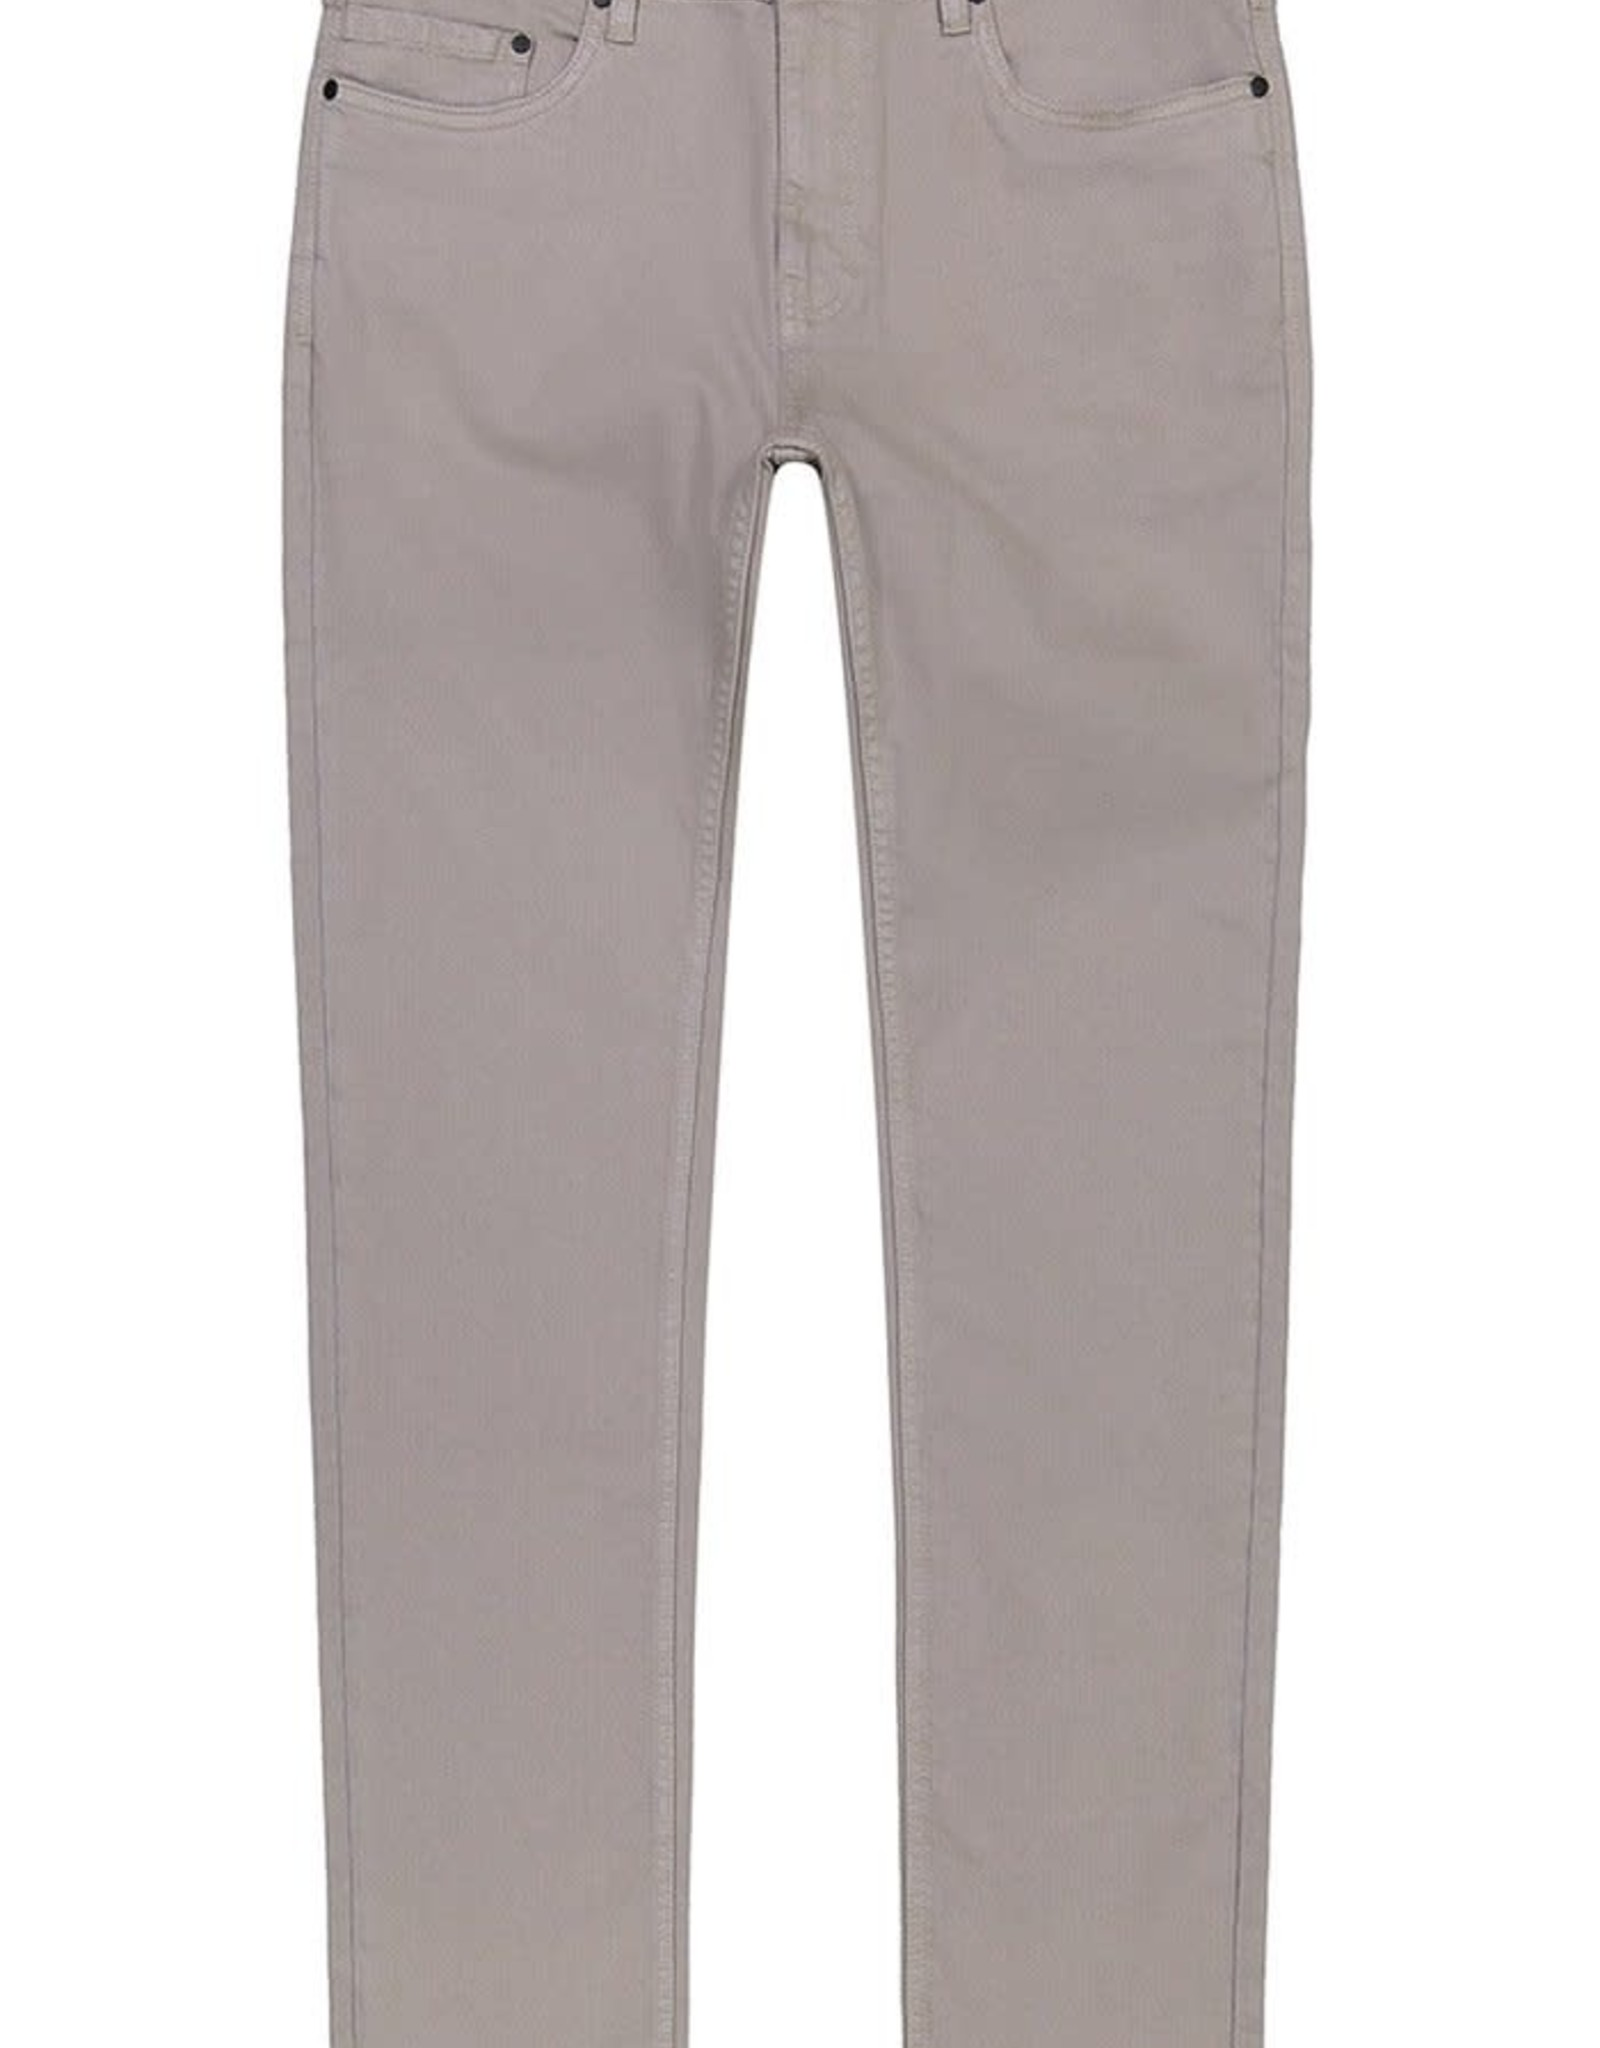 Jachs Flex Twill Traveler Pant